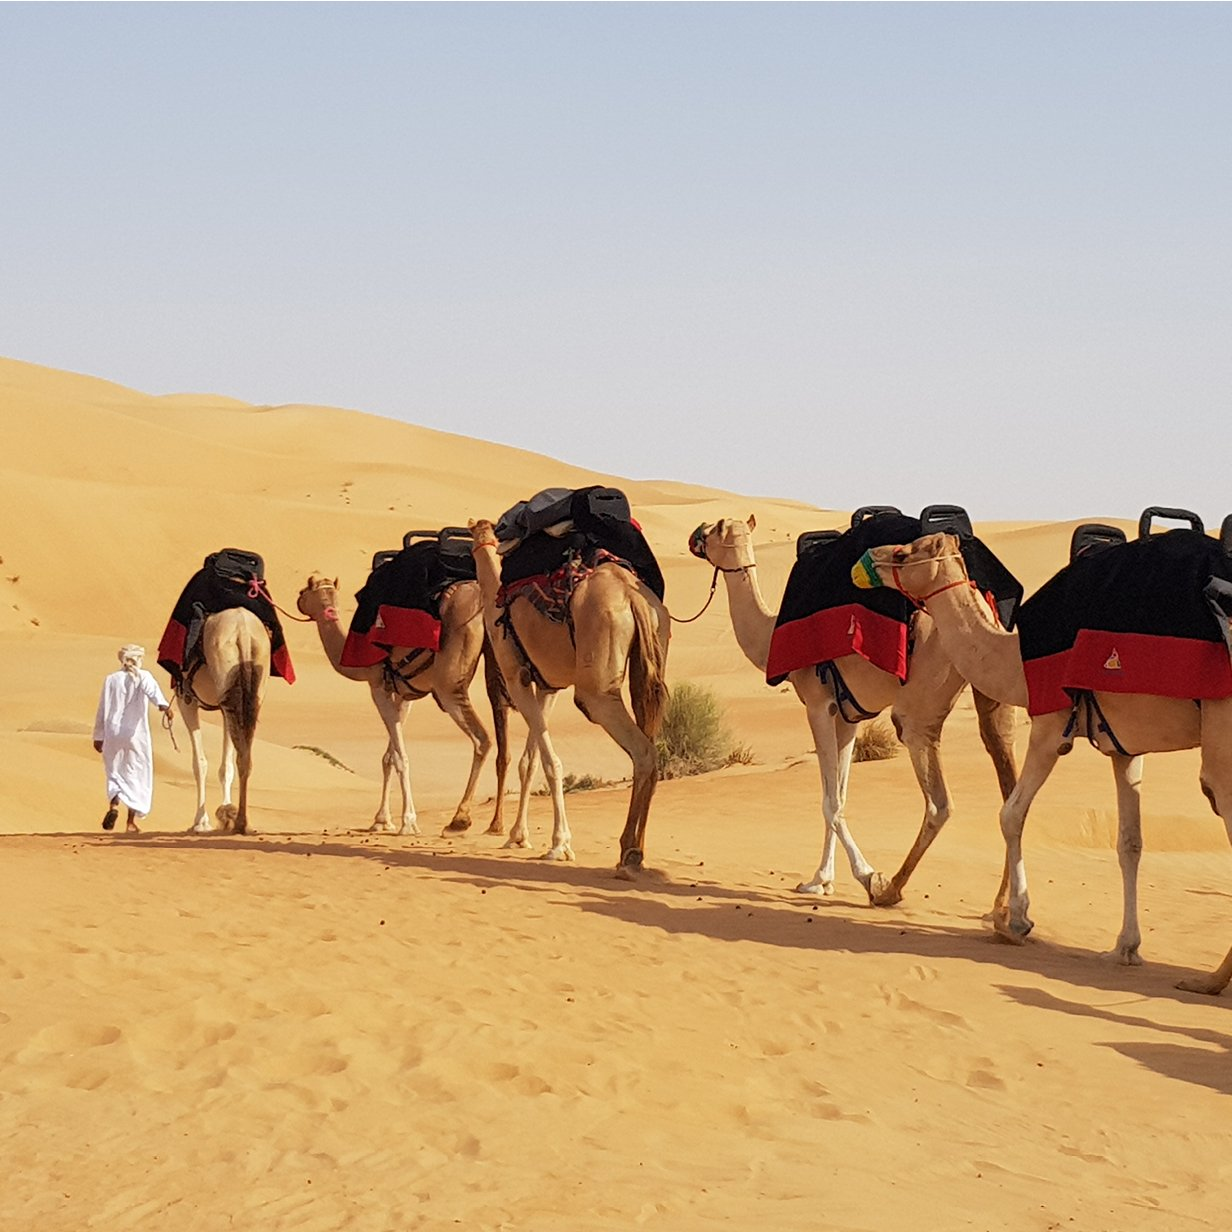 Morning Desert Safari Camel Trekking in Dubai